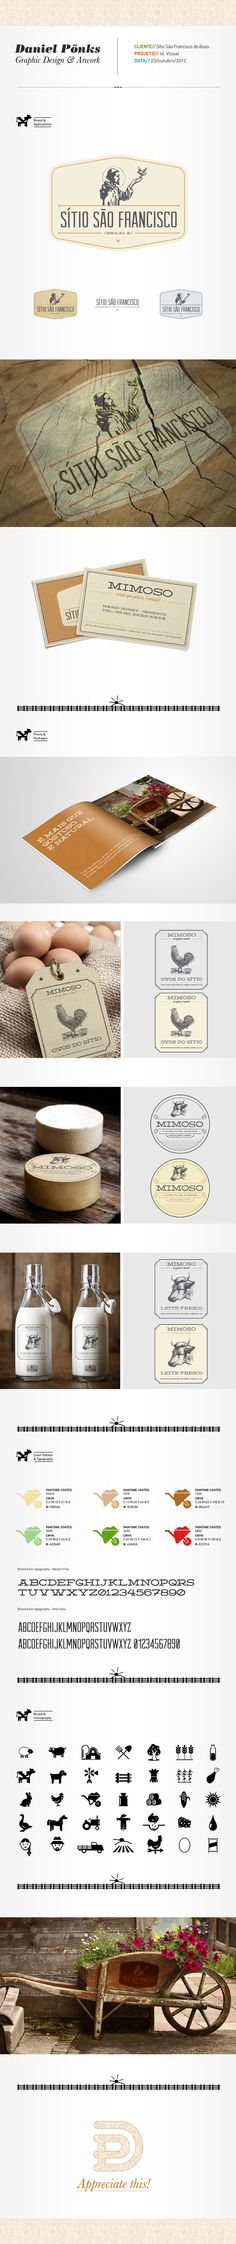 São Francisco de Assis Farm by Daniel Pönks, via Behance. Swing top bottles give a vintage flair to any product.